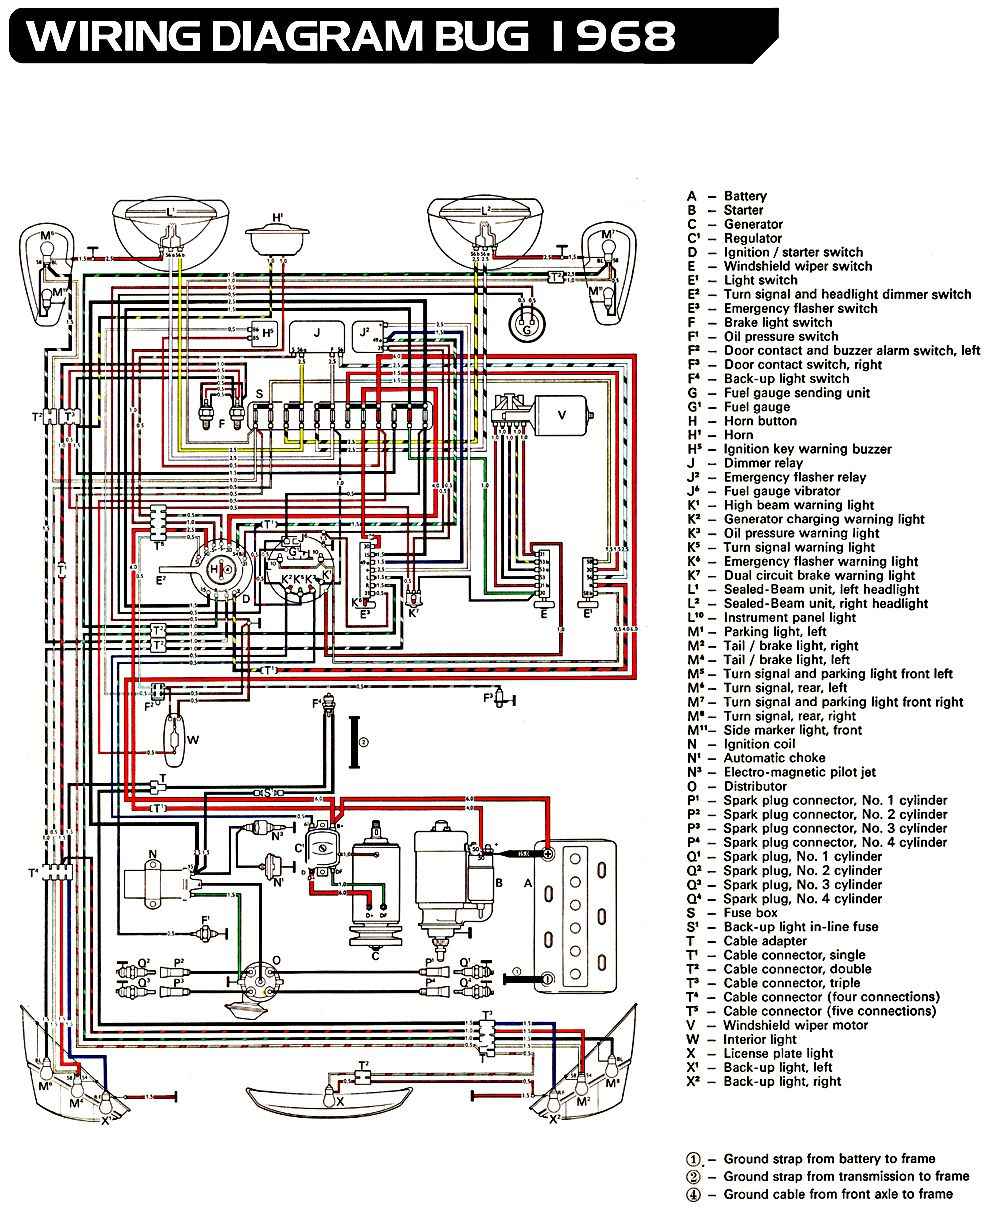 3a1908112d3826270ed5e3be362292bf vw bug ignition wiring diagram 73 vw wiring diagram free 1973 vw wiring diagram at nearapp.co